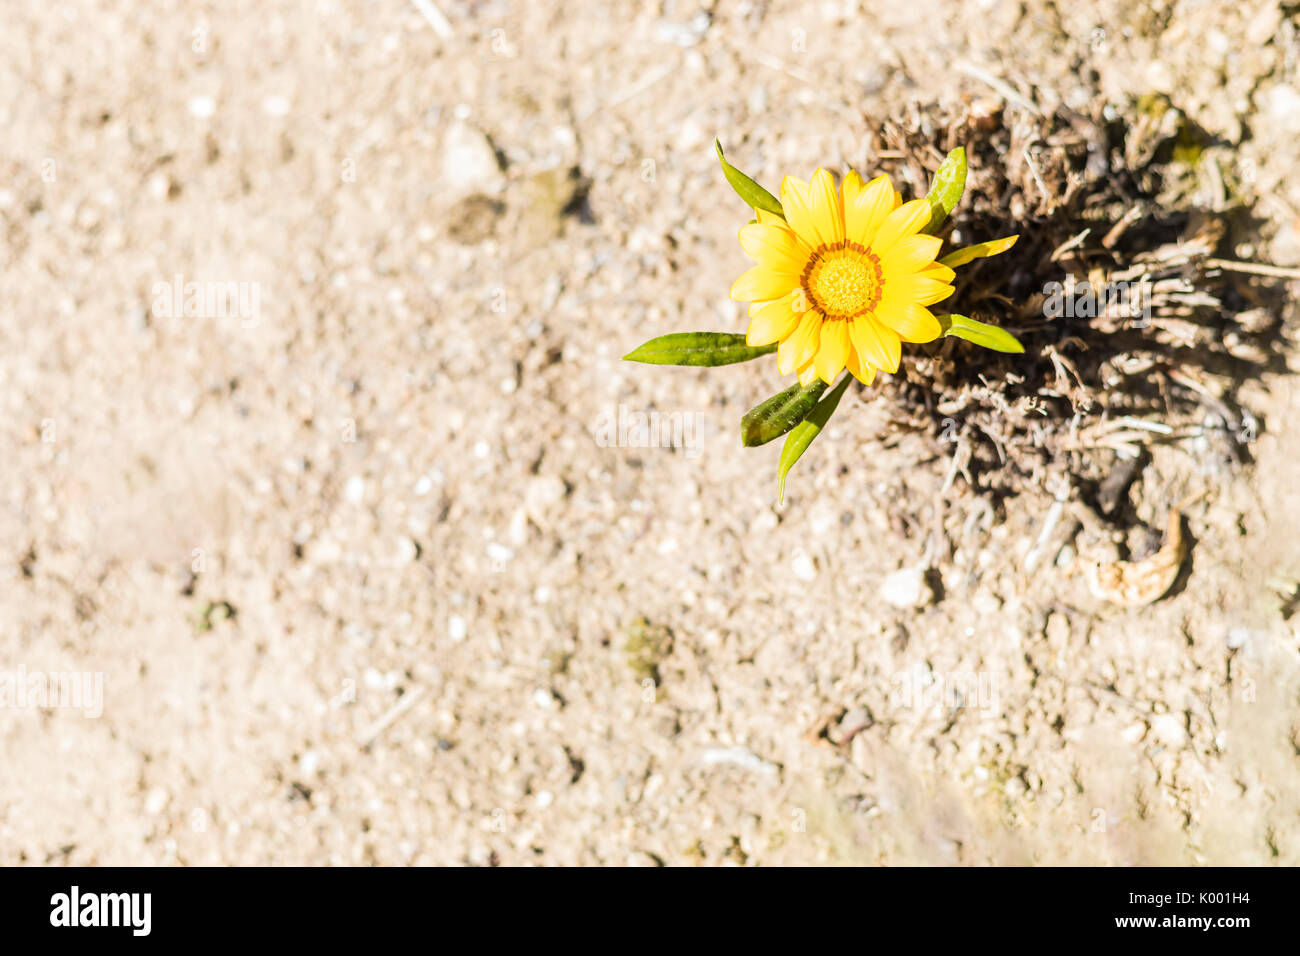 Yellow African daisy flower on earthy brown and dusty background. - Stock Image